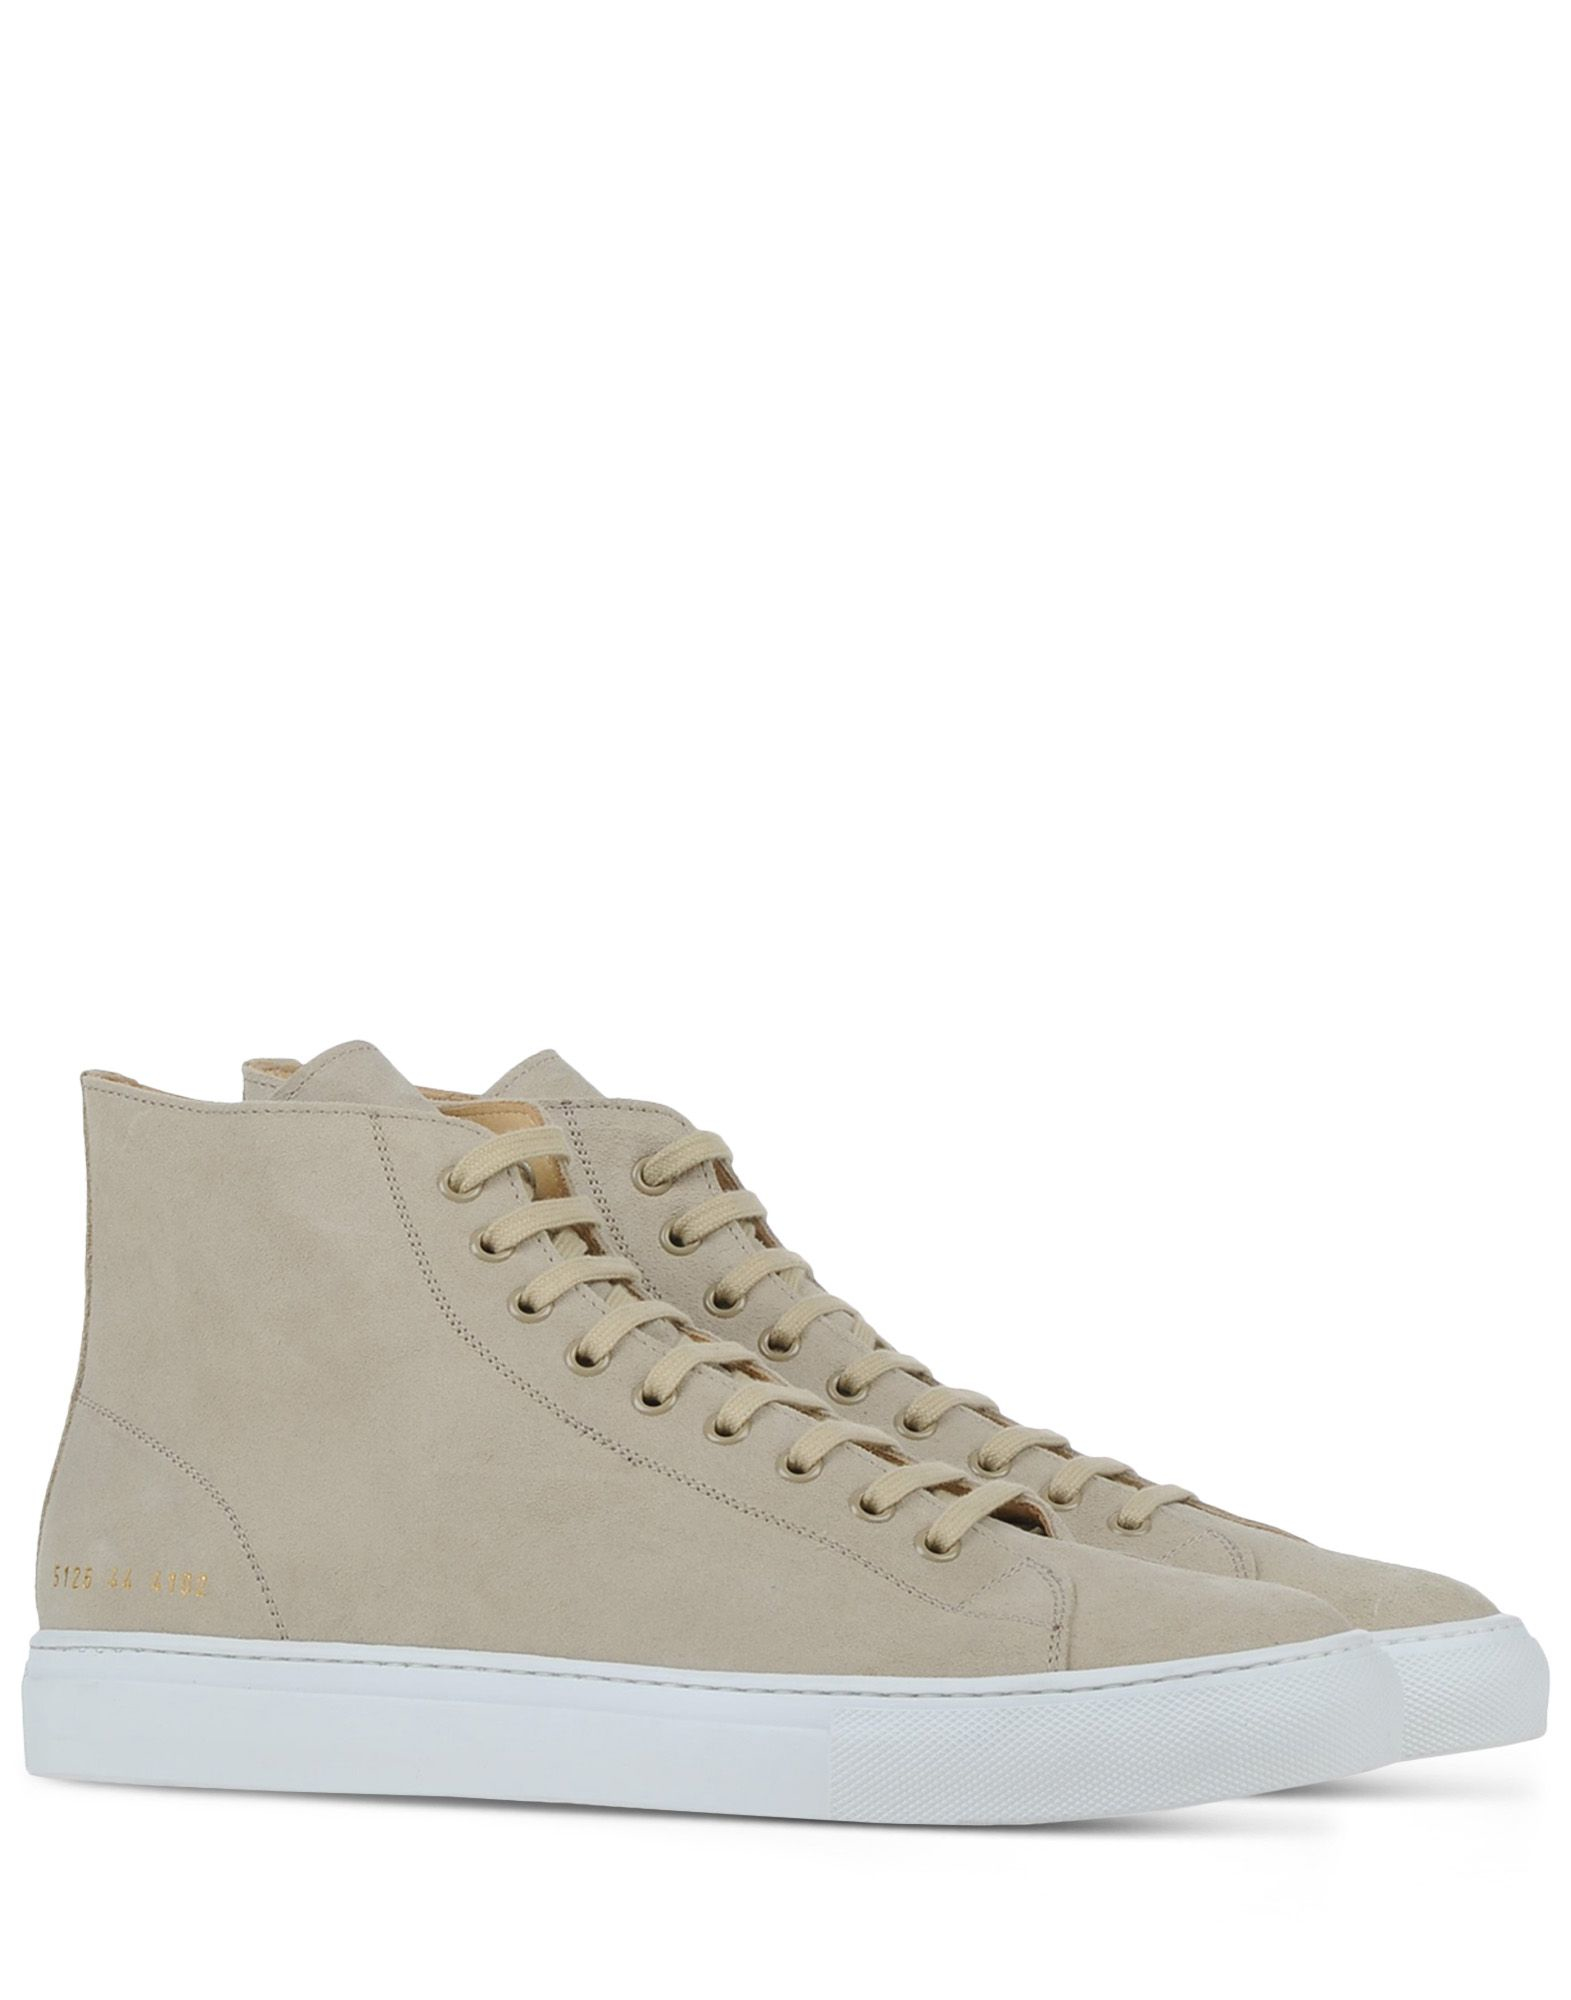 common projects sneakers Buy common projects leather low sneakers at outlet price on glamood the best men common projects leather low sneakers offer for your classy wardrobe.